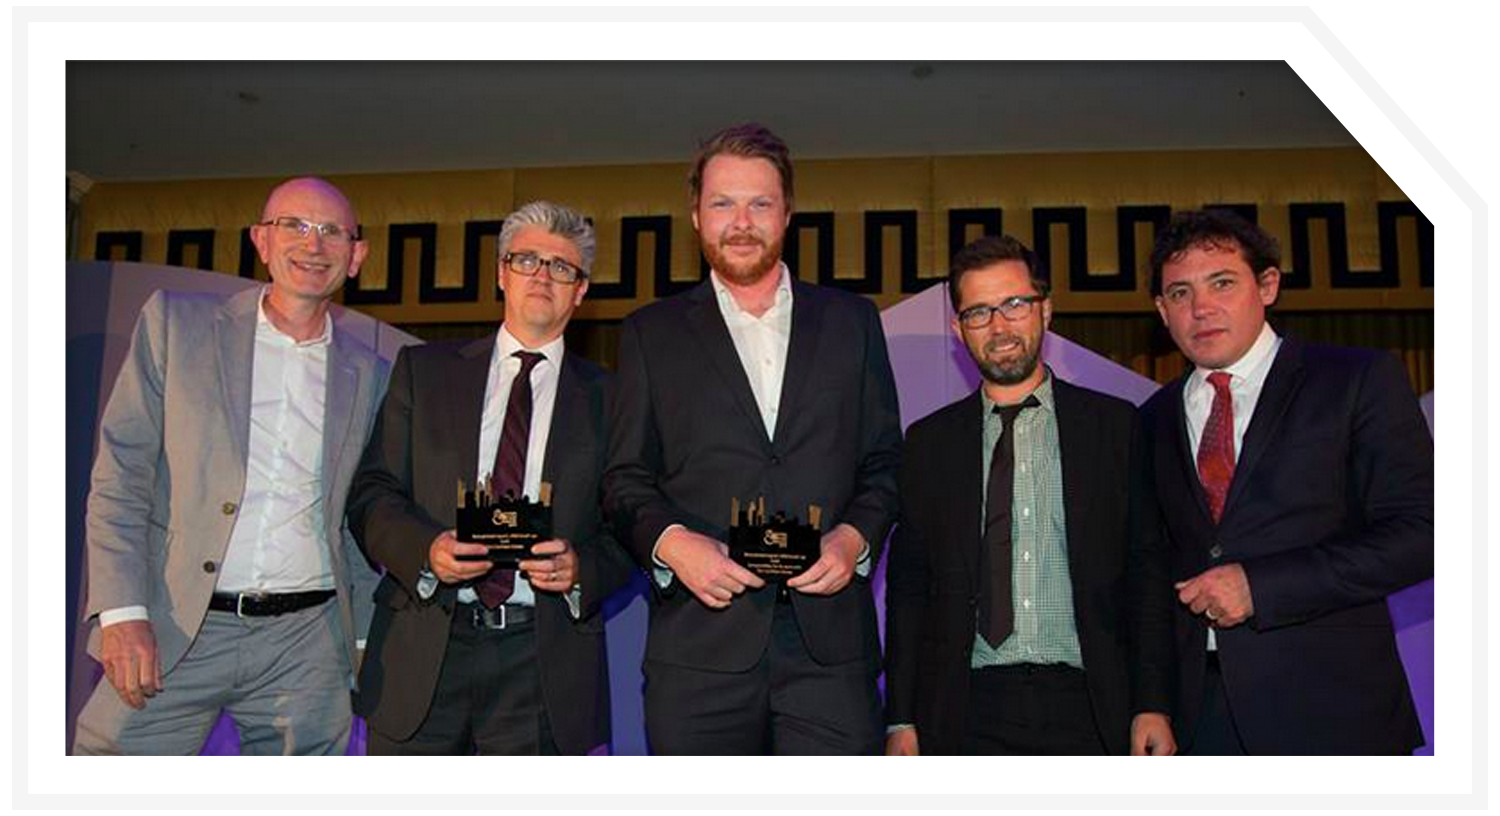 Rocksalt's Paul Nolan (left) and host Simon Jack (right) with worthy winners from Cambian Group